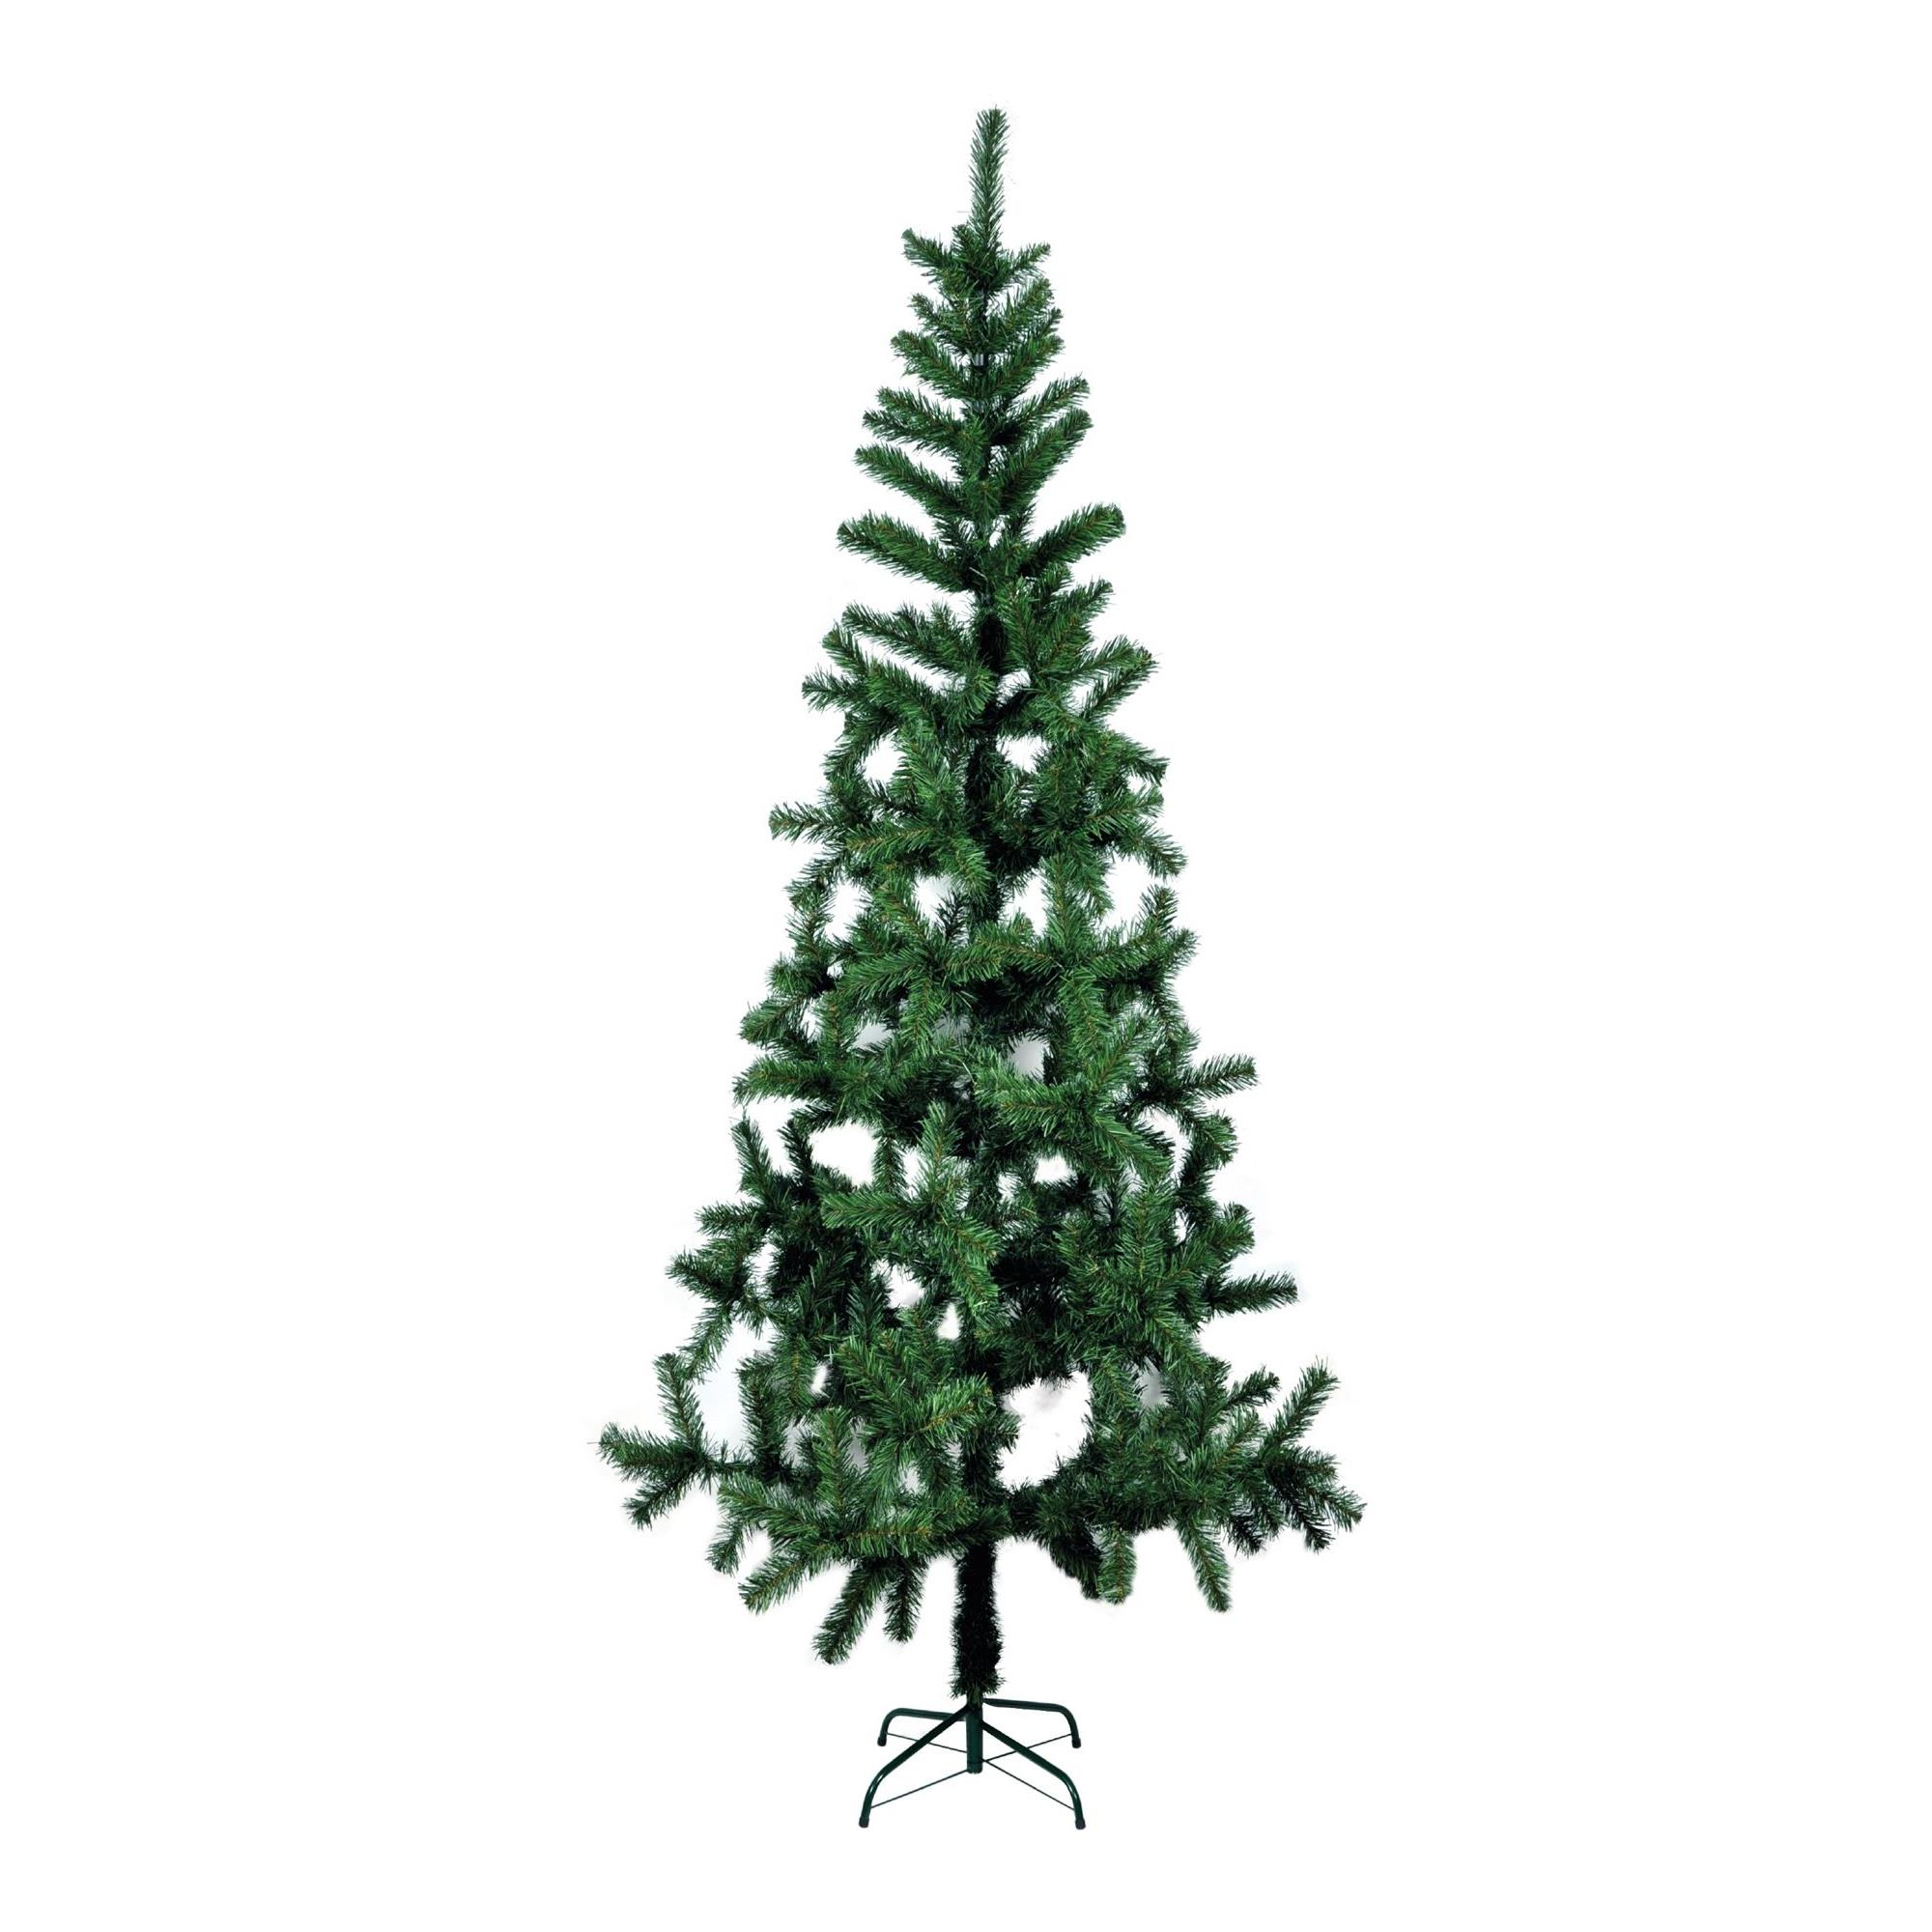 CHRISTMAS TREE christmas tree green 240 cm | IKEA New Year Decorations